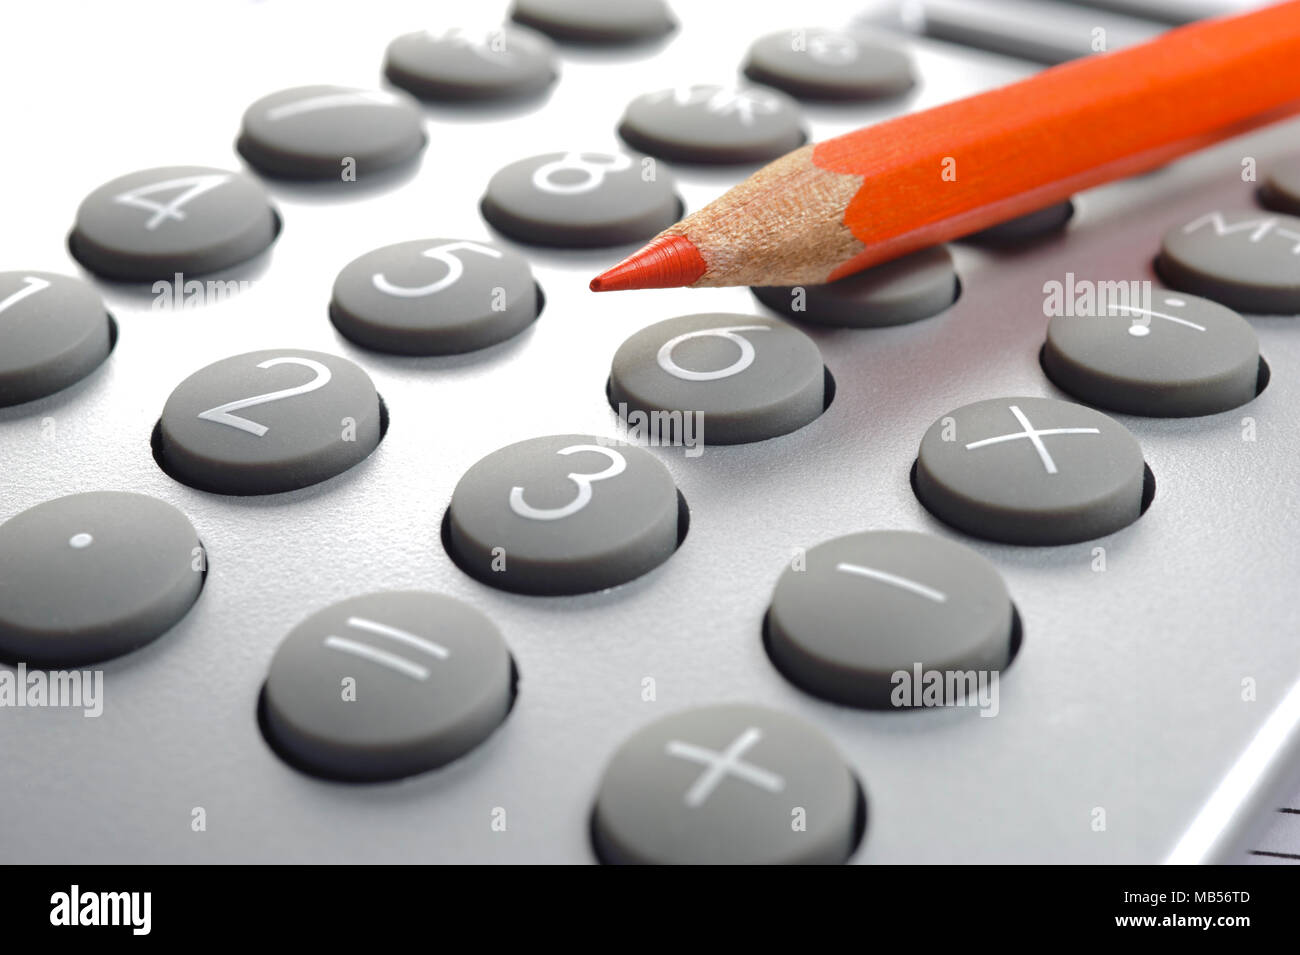 red pencil laying on top of calculator Stock Photo